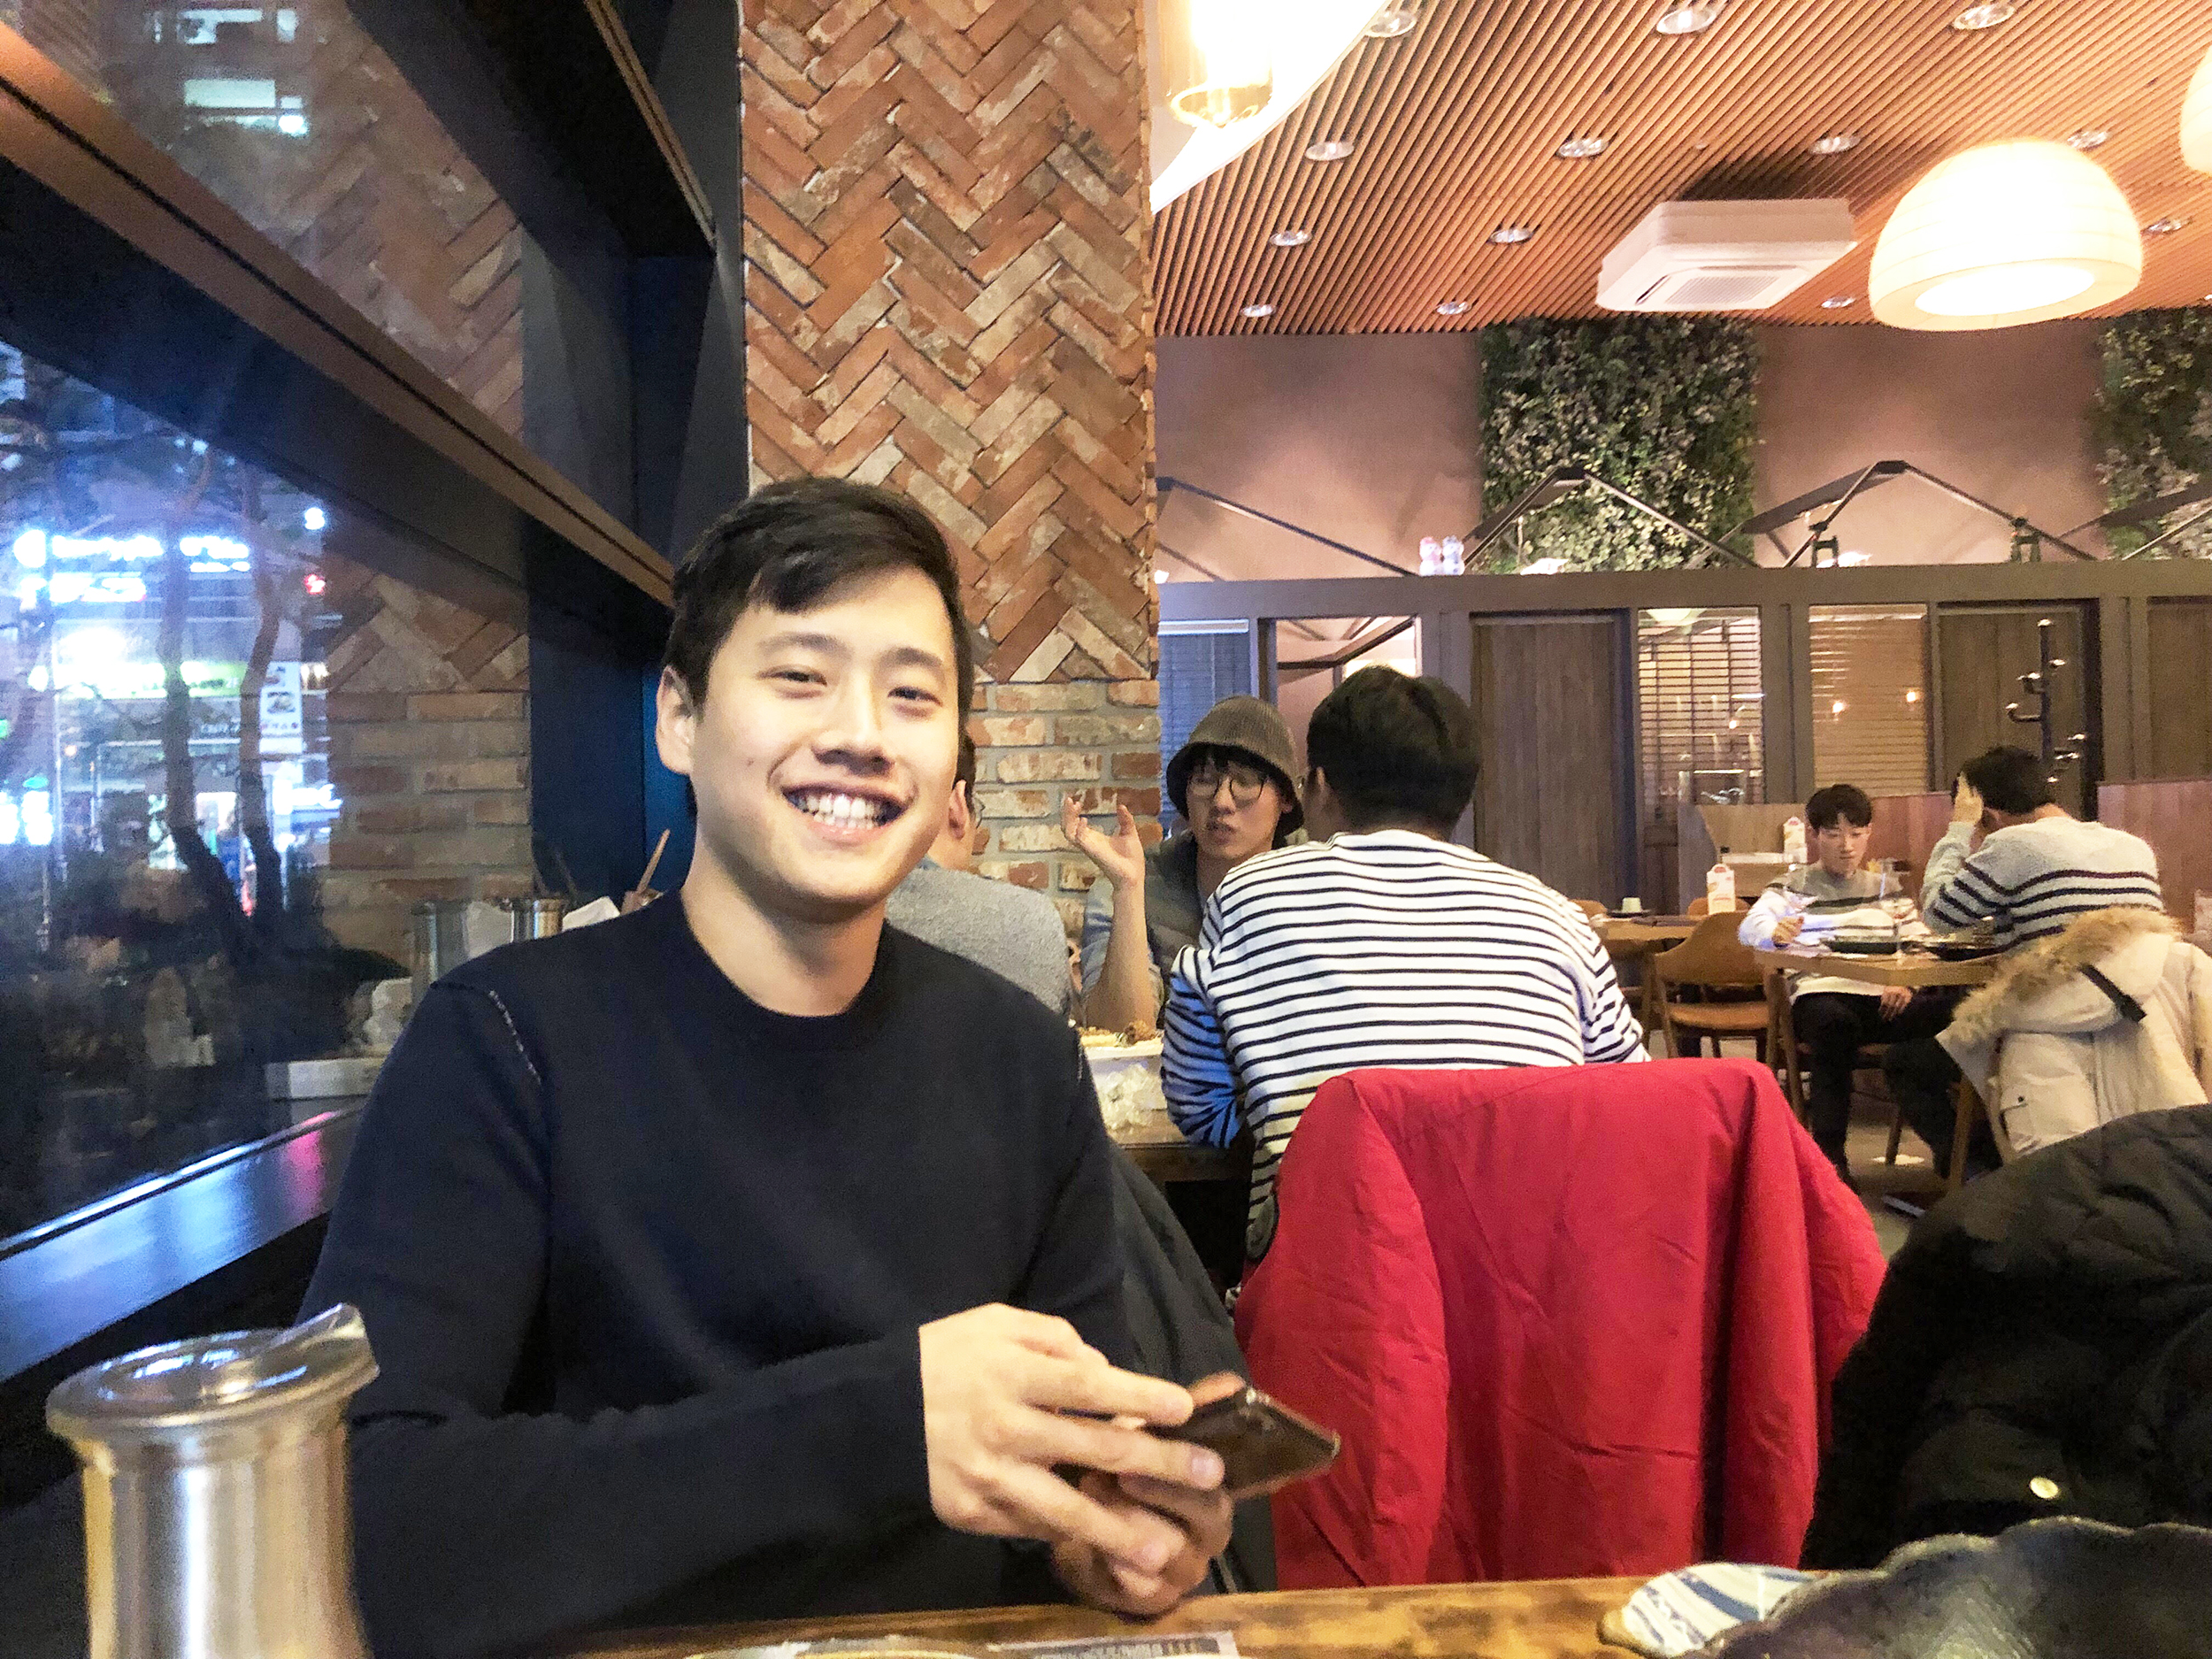 From June 2016 to March 2018, international relations and English double major junior Dong Won Oh served in the South Korean army. Raised in India because of his father's job, Oh attended high school in America and chose Geneseo per recommendation of his counselor (Courtesy of Dong Won Oh).